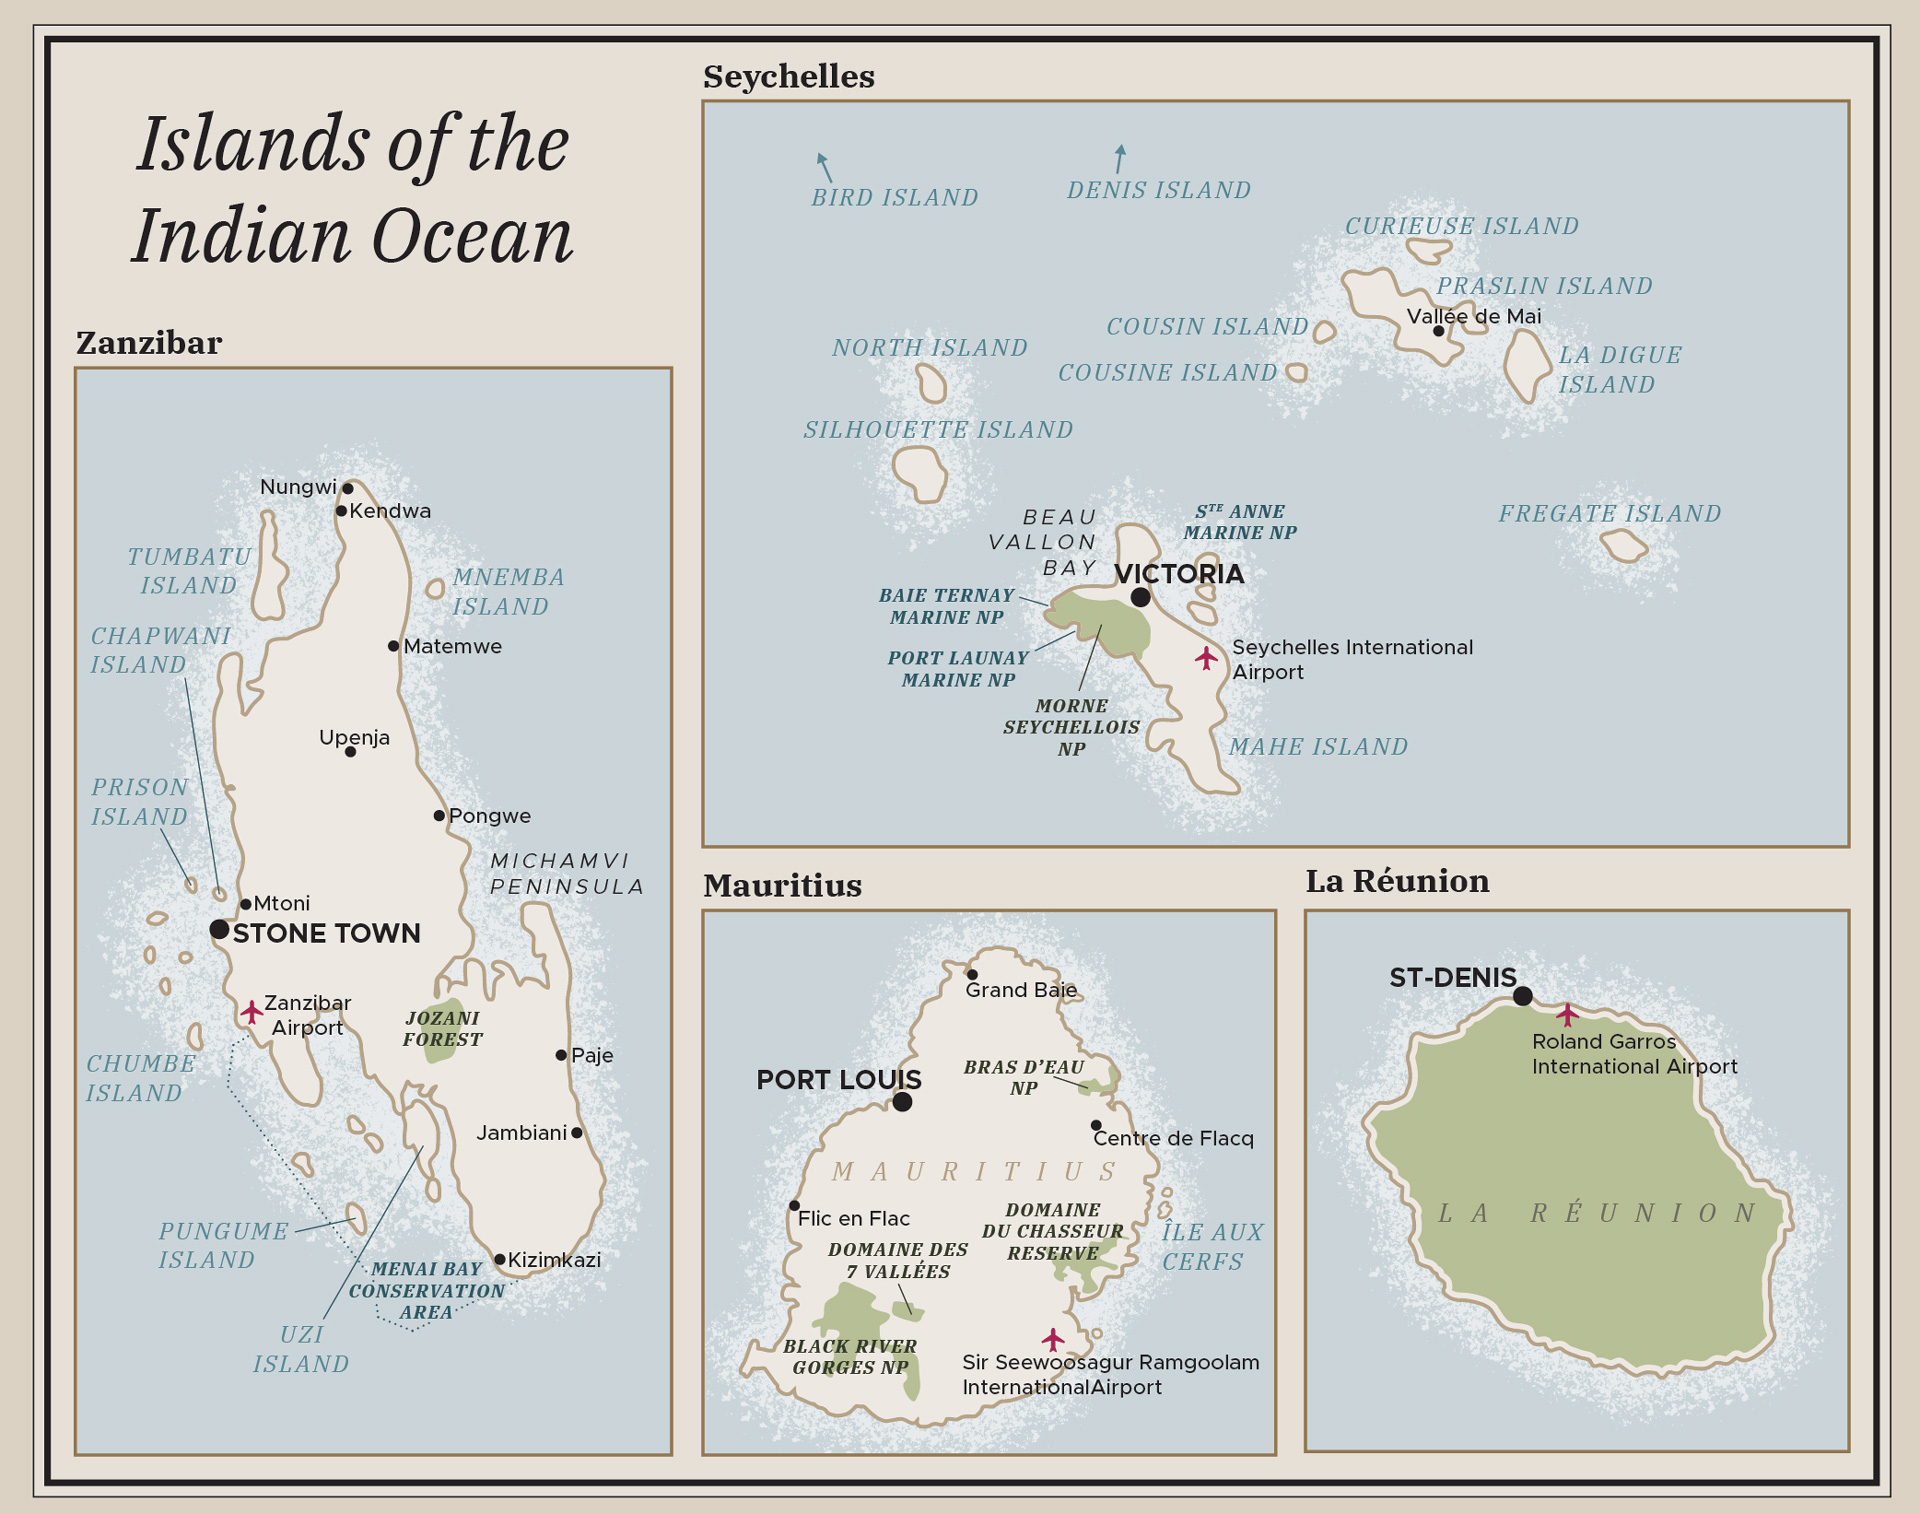 Focus on the Indian Ocean Islands inset